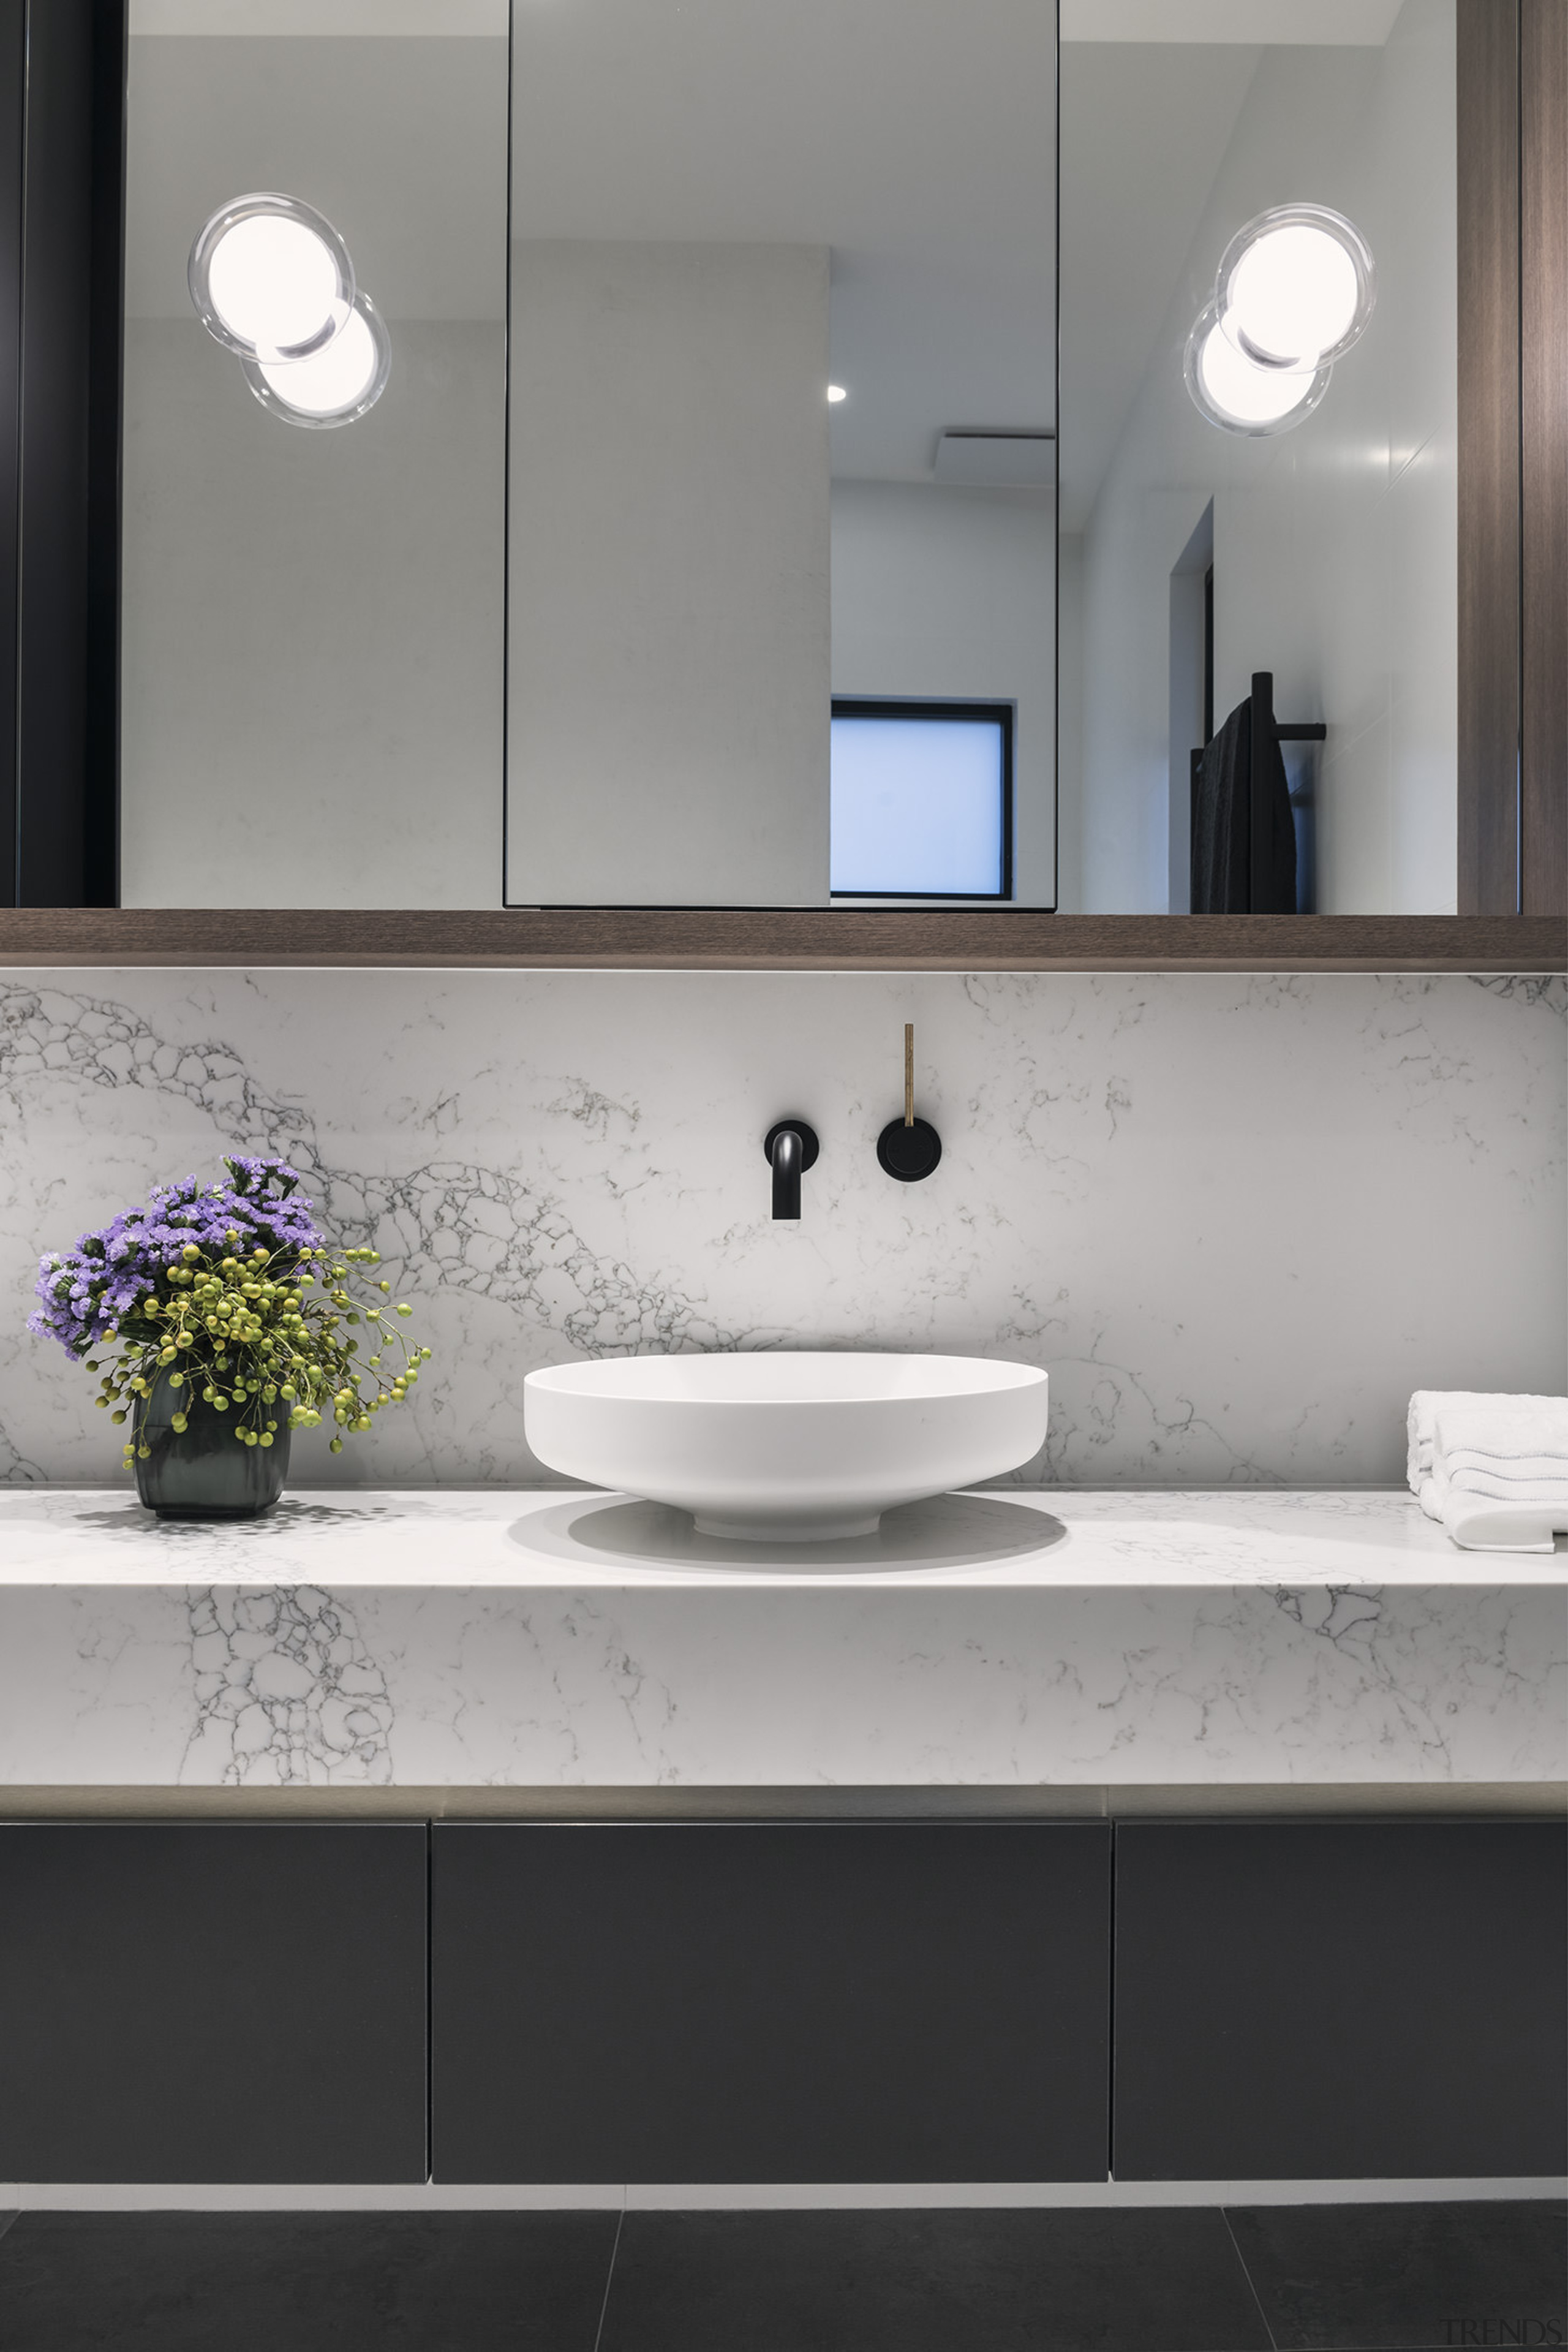 A crackle in the vanity bench and splashback